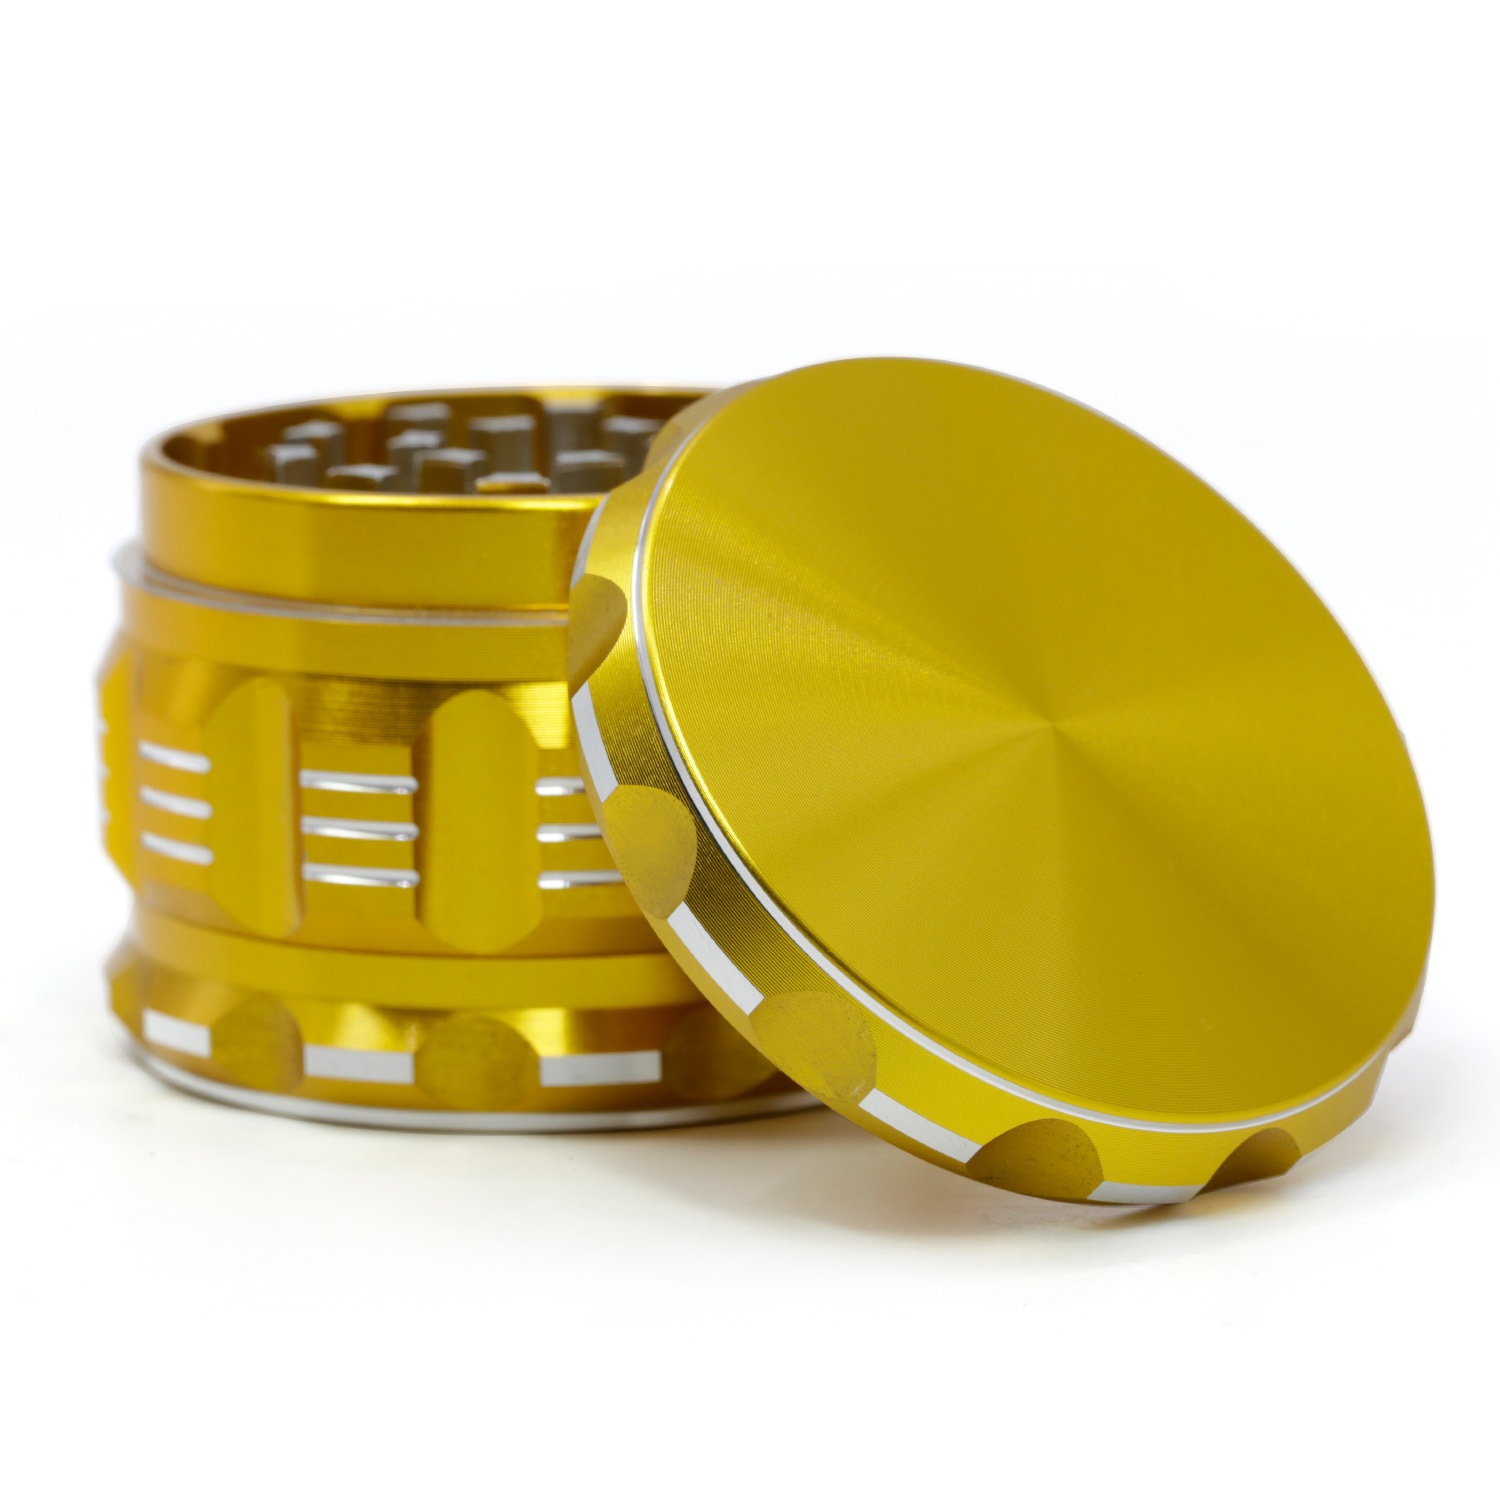 NEW 4 Parts 63mm Aluminum Alloy Spice Mill Tobacco Herb Grinder Weed Smoker Hand Muller for Smoking  Maker Drop Shopping